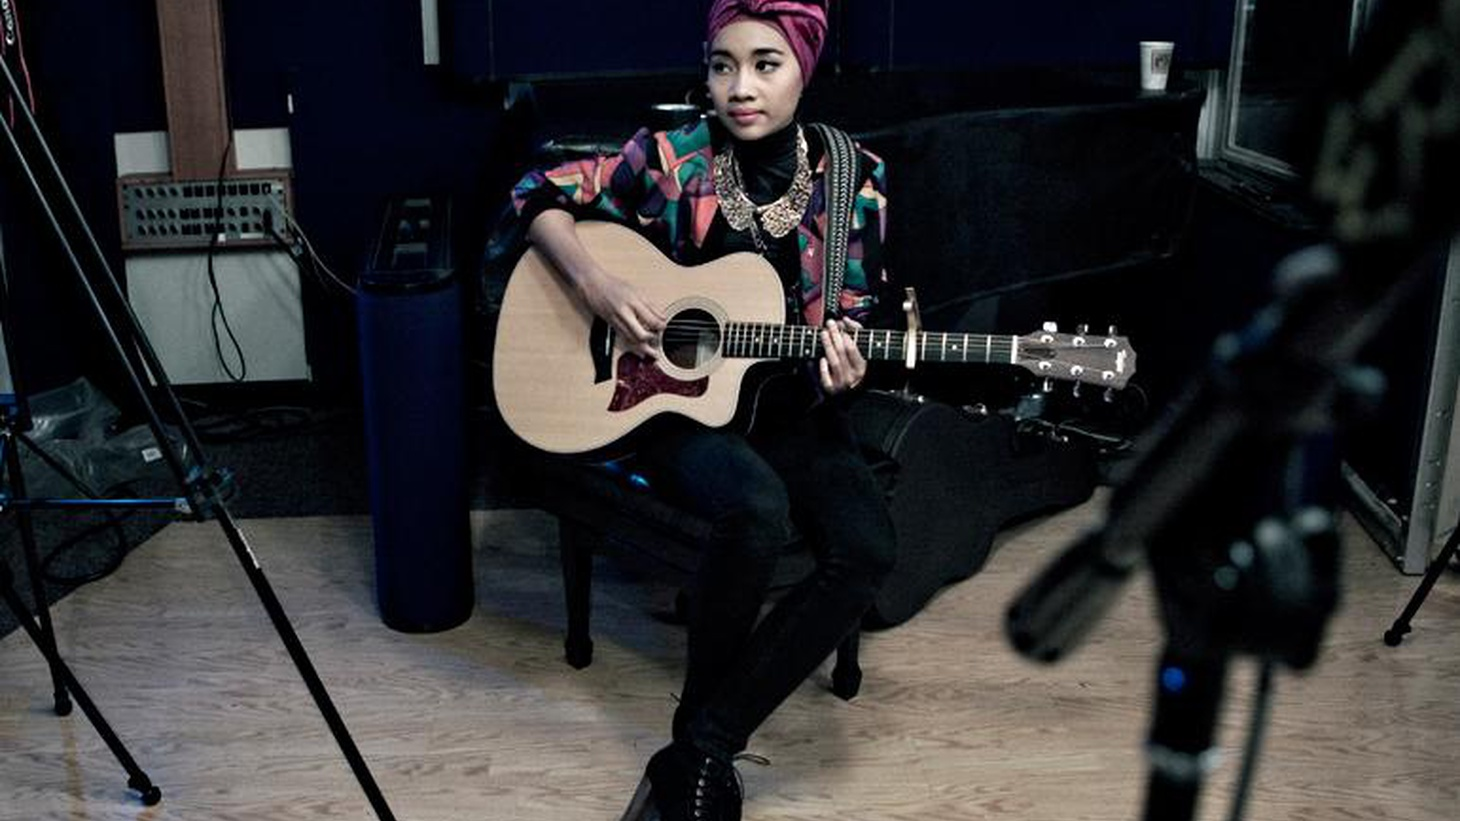 Malaysian singer-songerwriter Yuna offers breezy vocals and warm melodies...